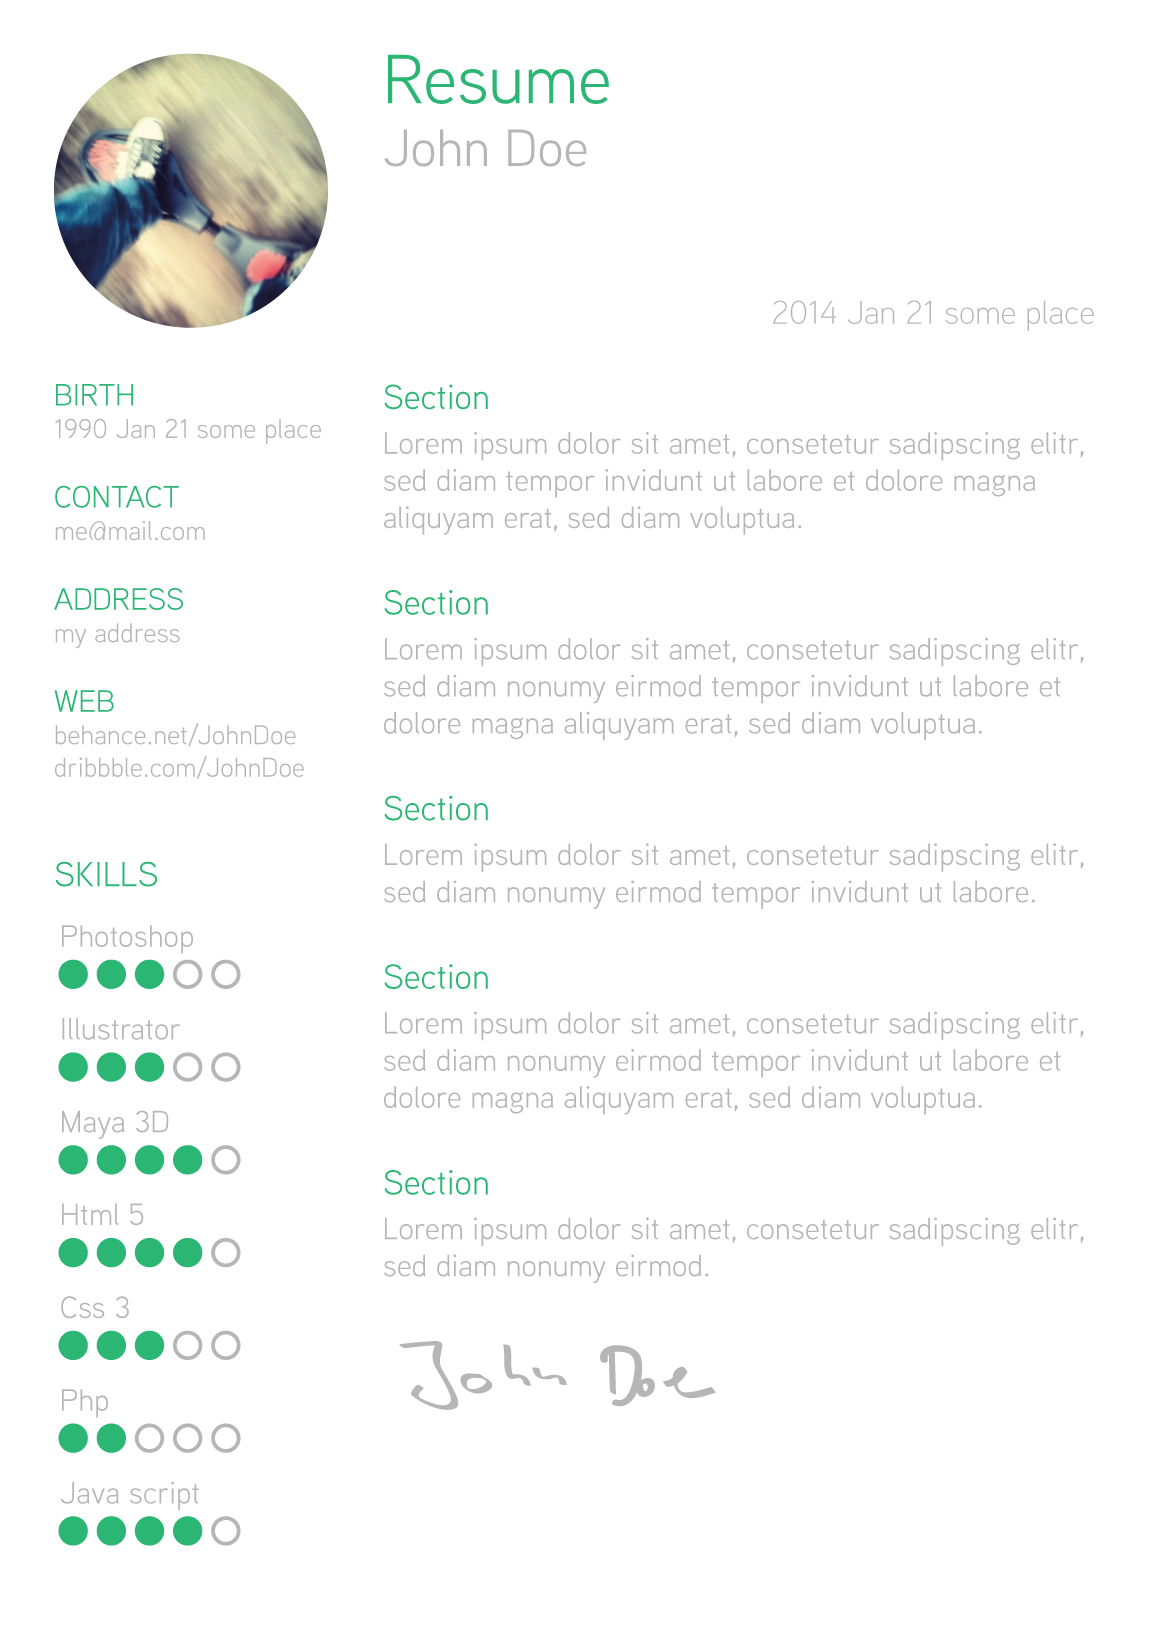 Resume Template by Tilman Roeder | professional | Pinterest